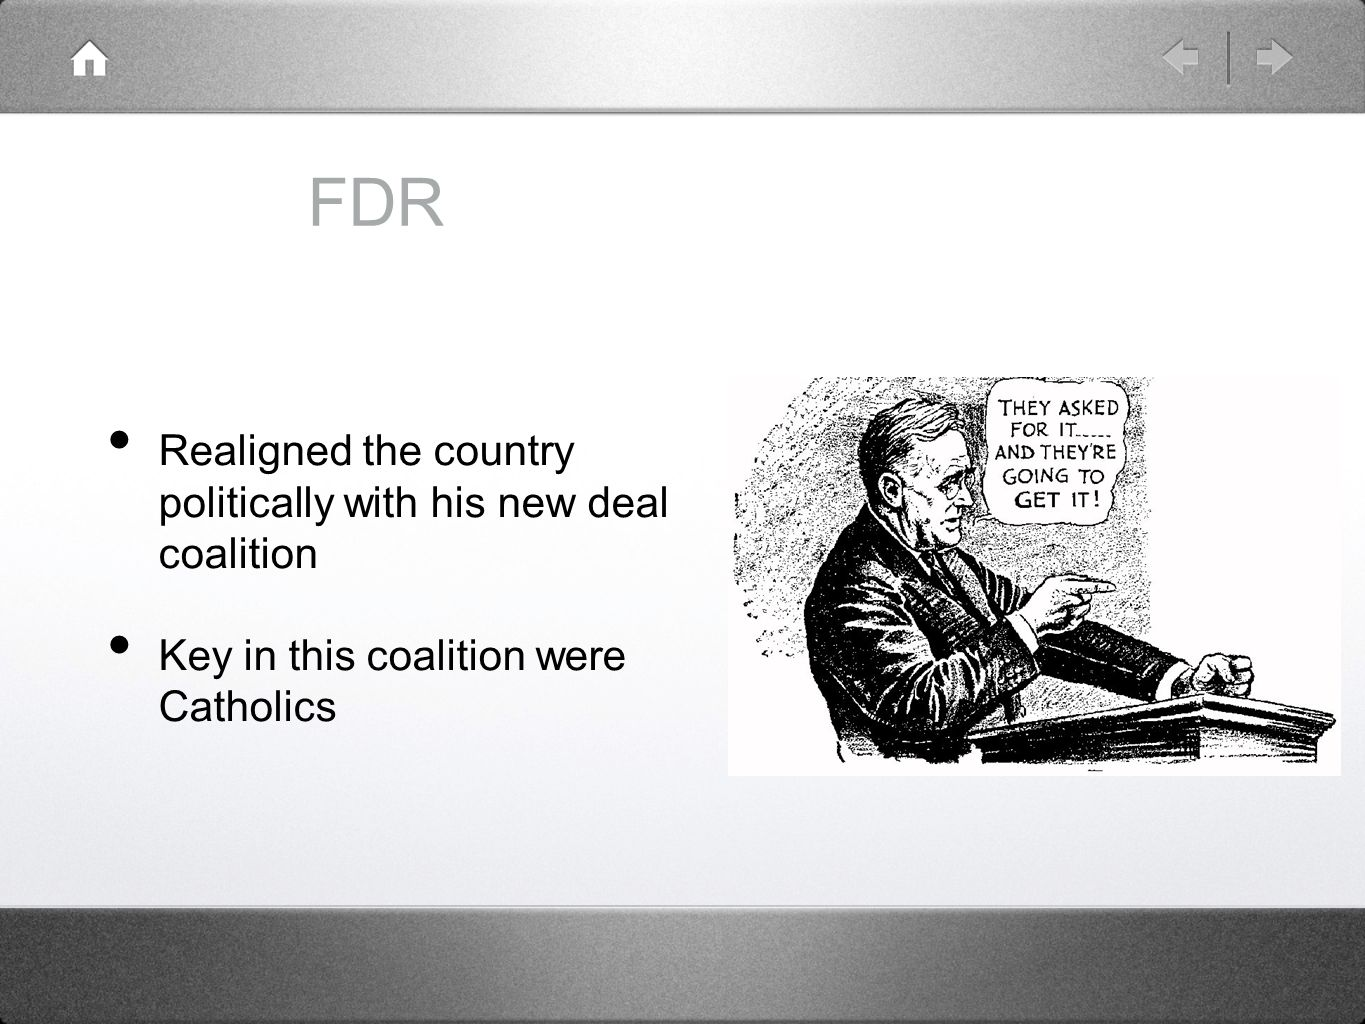 FDR Realigned the country politically with his new deal coalition